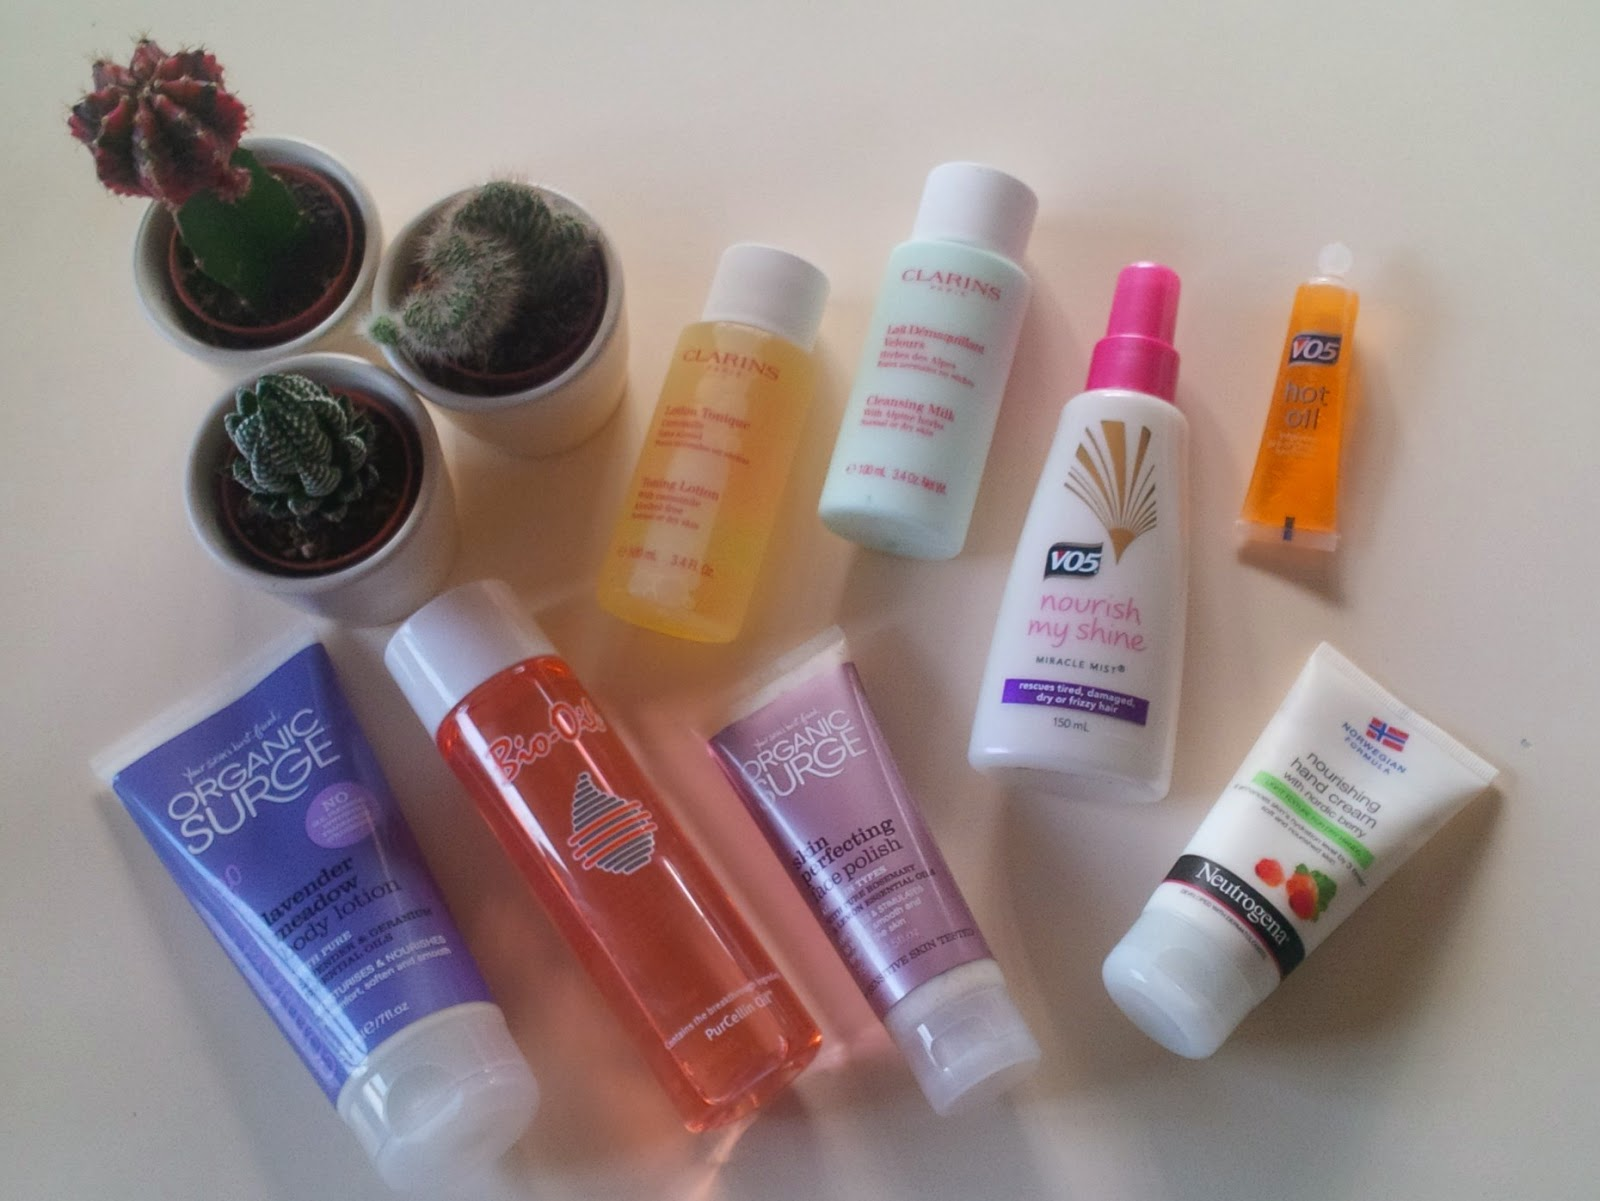 My skincare and haircare products haul